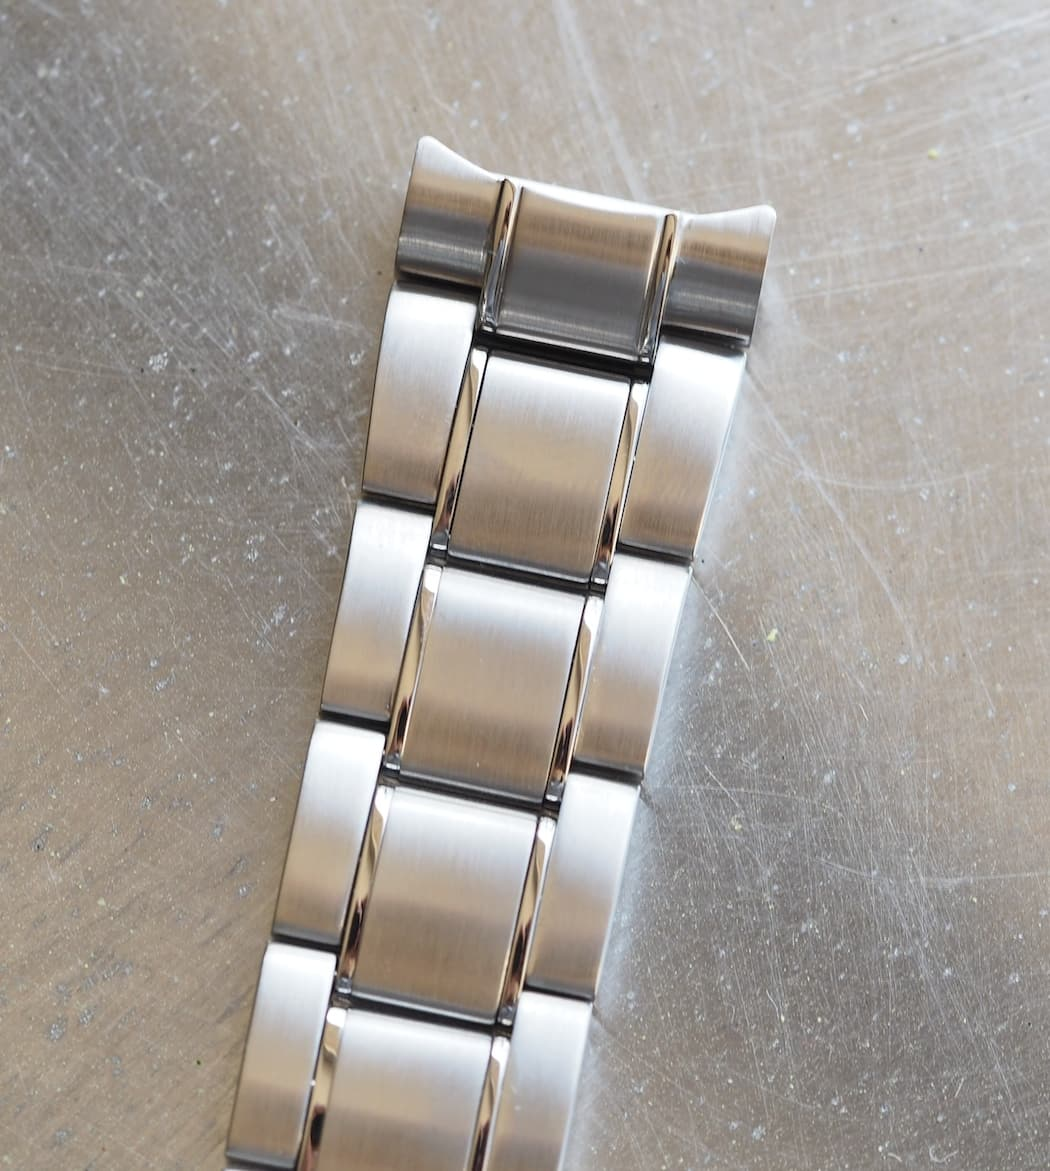 A closer look at the Seiko MM300 bracelet